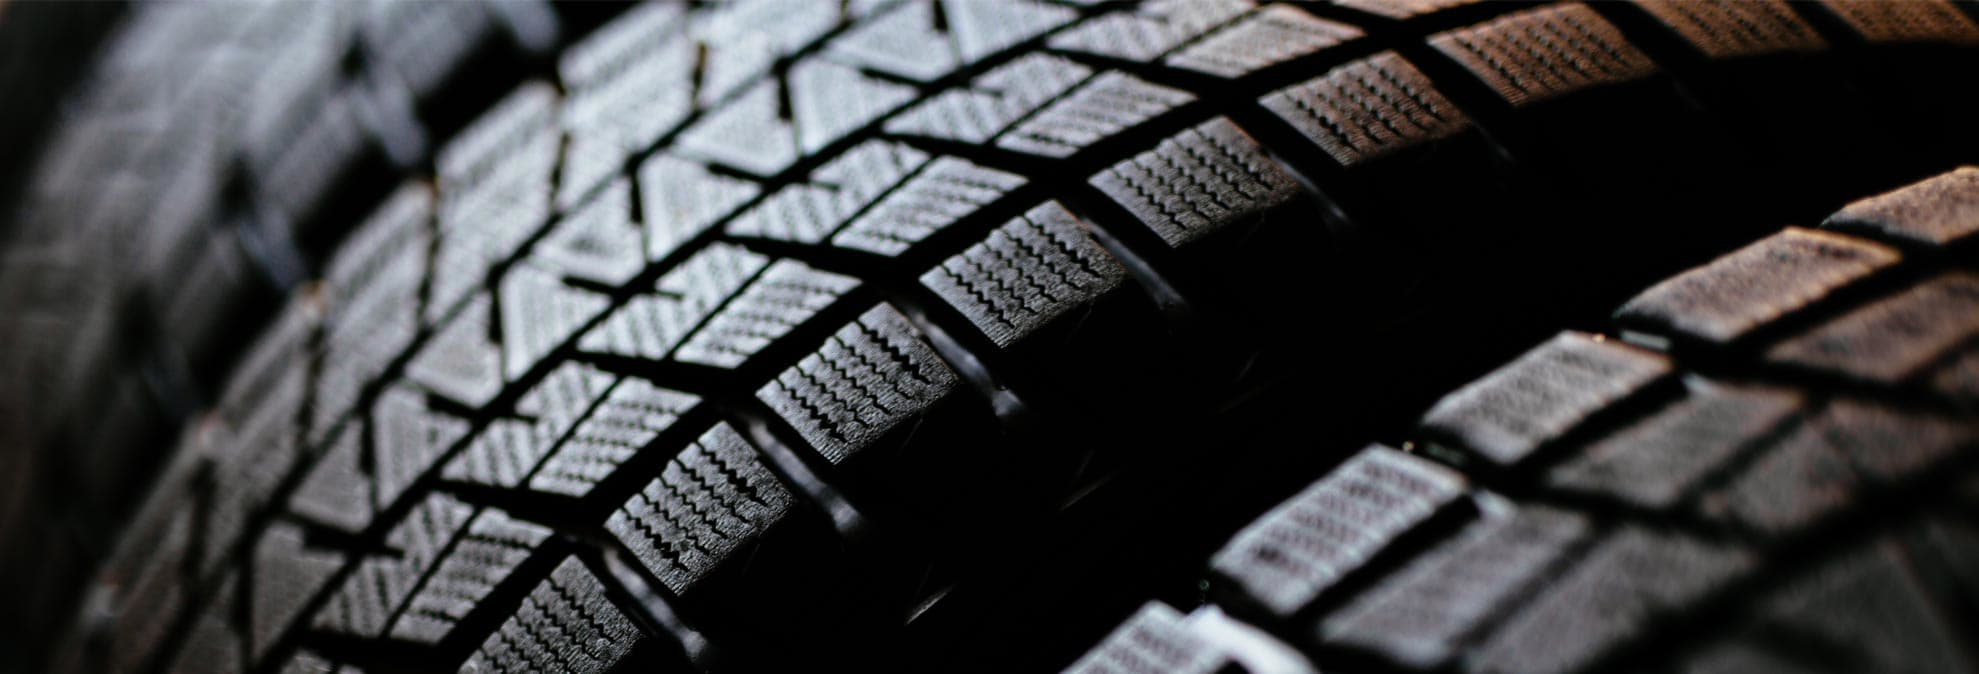 Cost of Replacement Tires & Save When Buying - Consumer ...